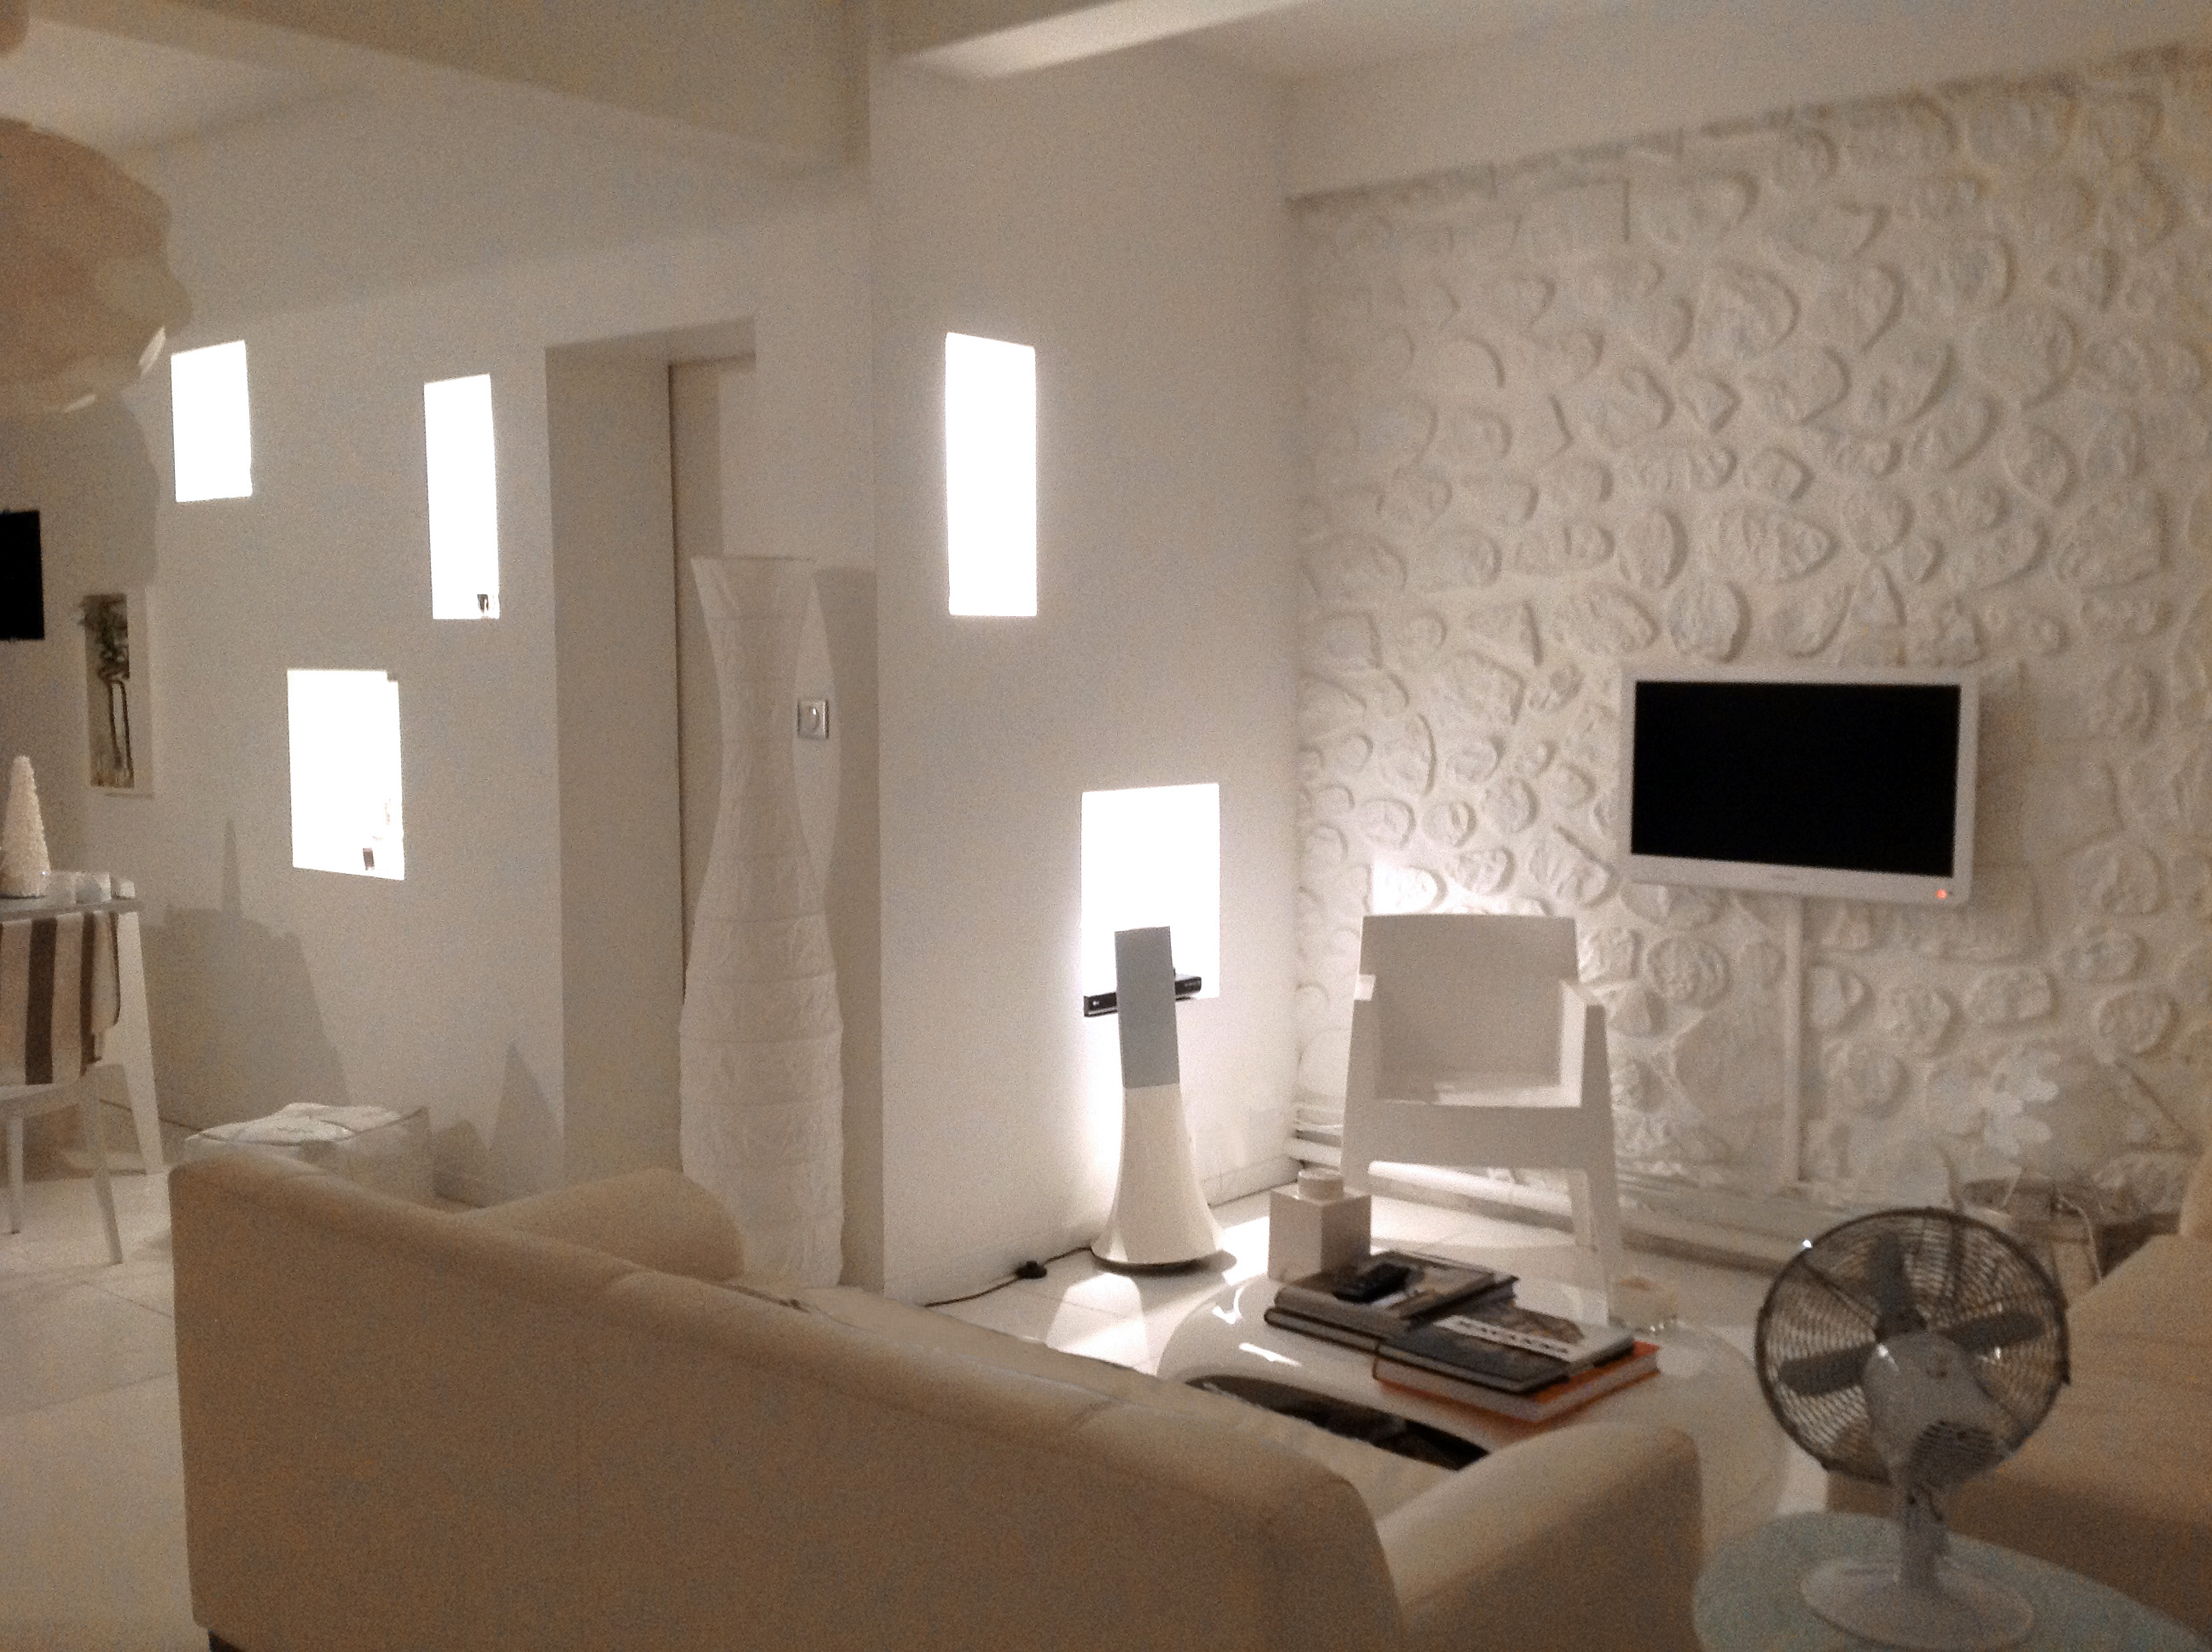 Mod le d coration salon blanc - Decoration salle salon maison ...